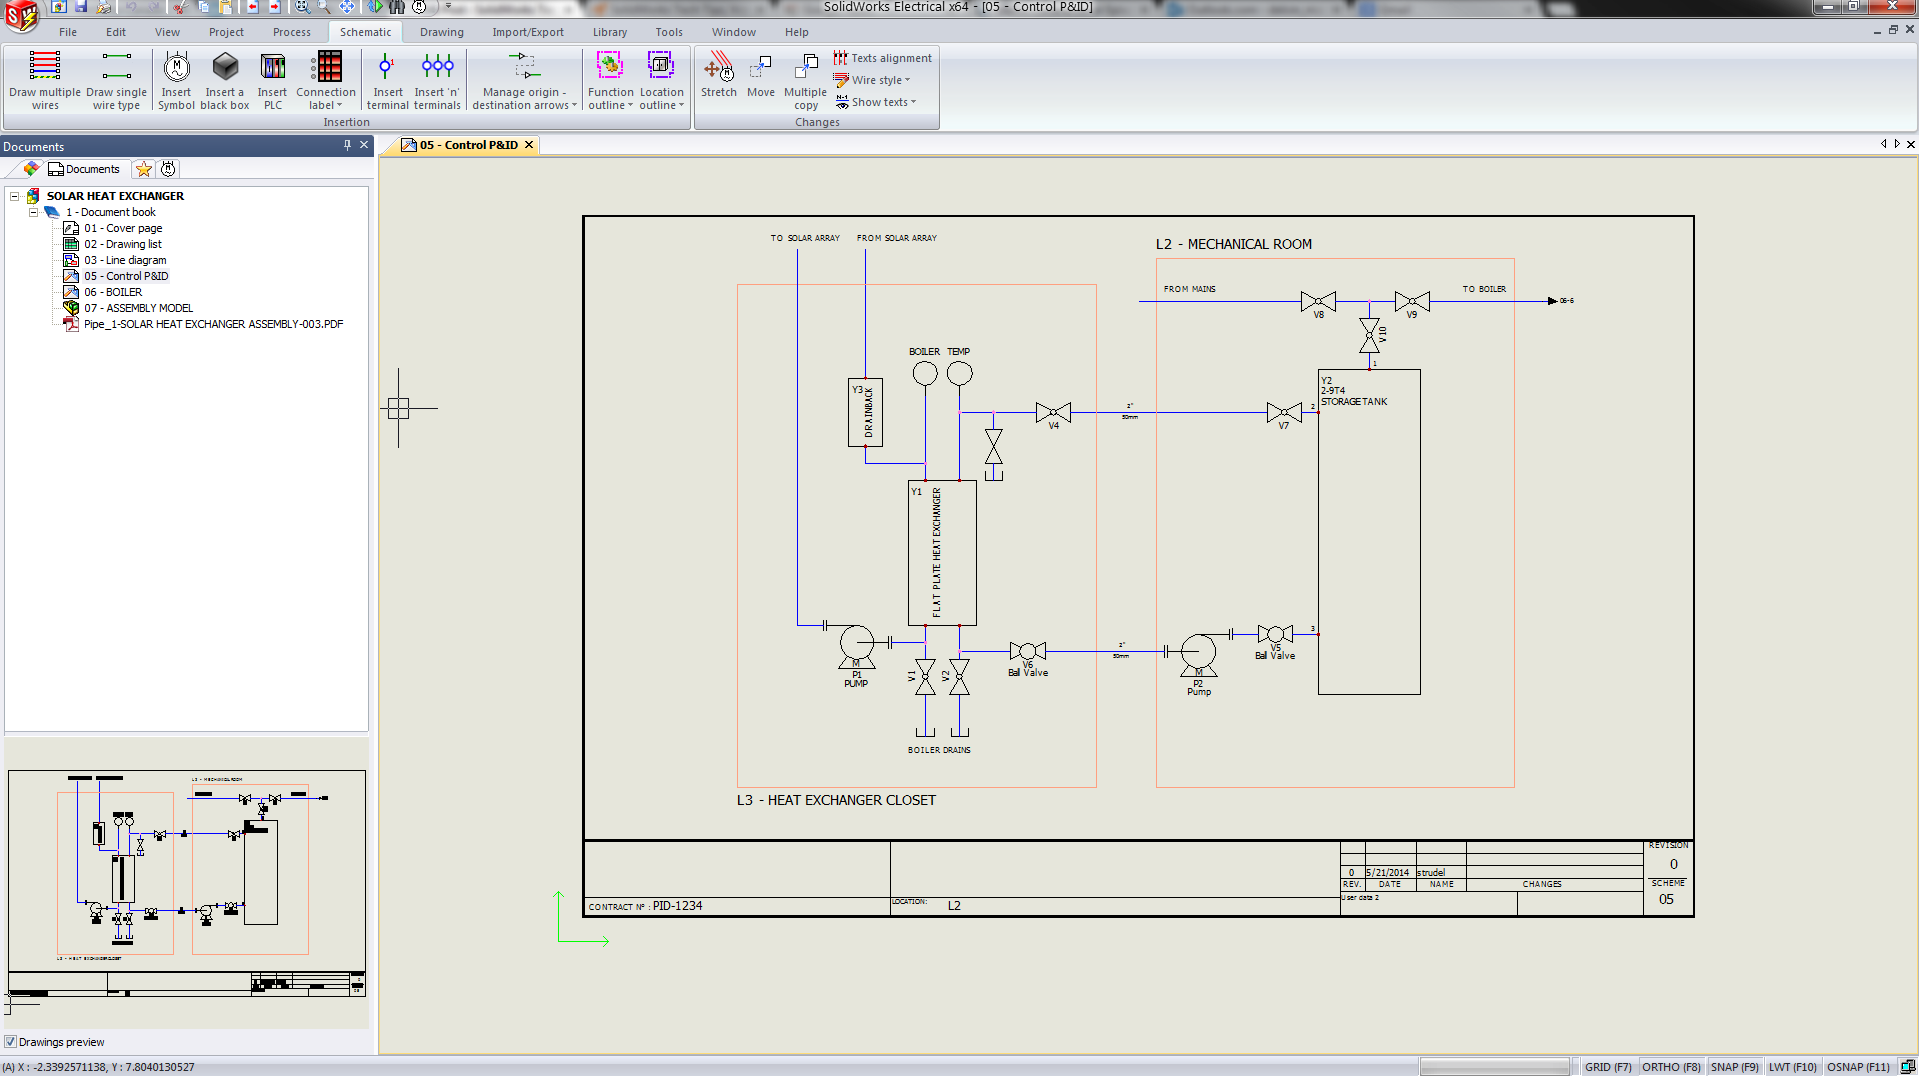 Solidworks Electrical Piping Instrumentation Wall Outlet Wiring Diagram Get Free Image About Pid 2d